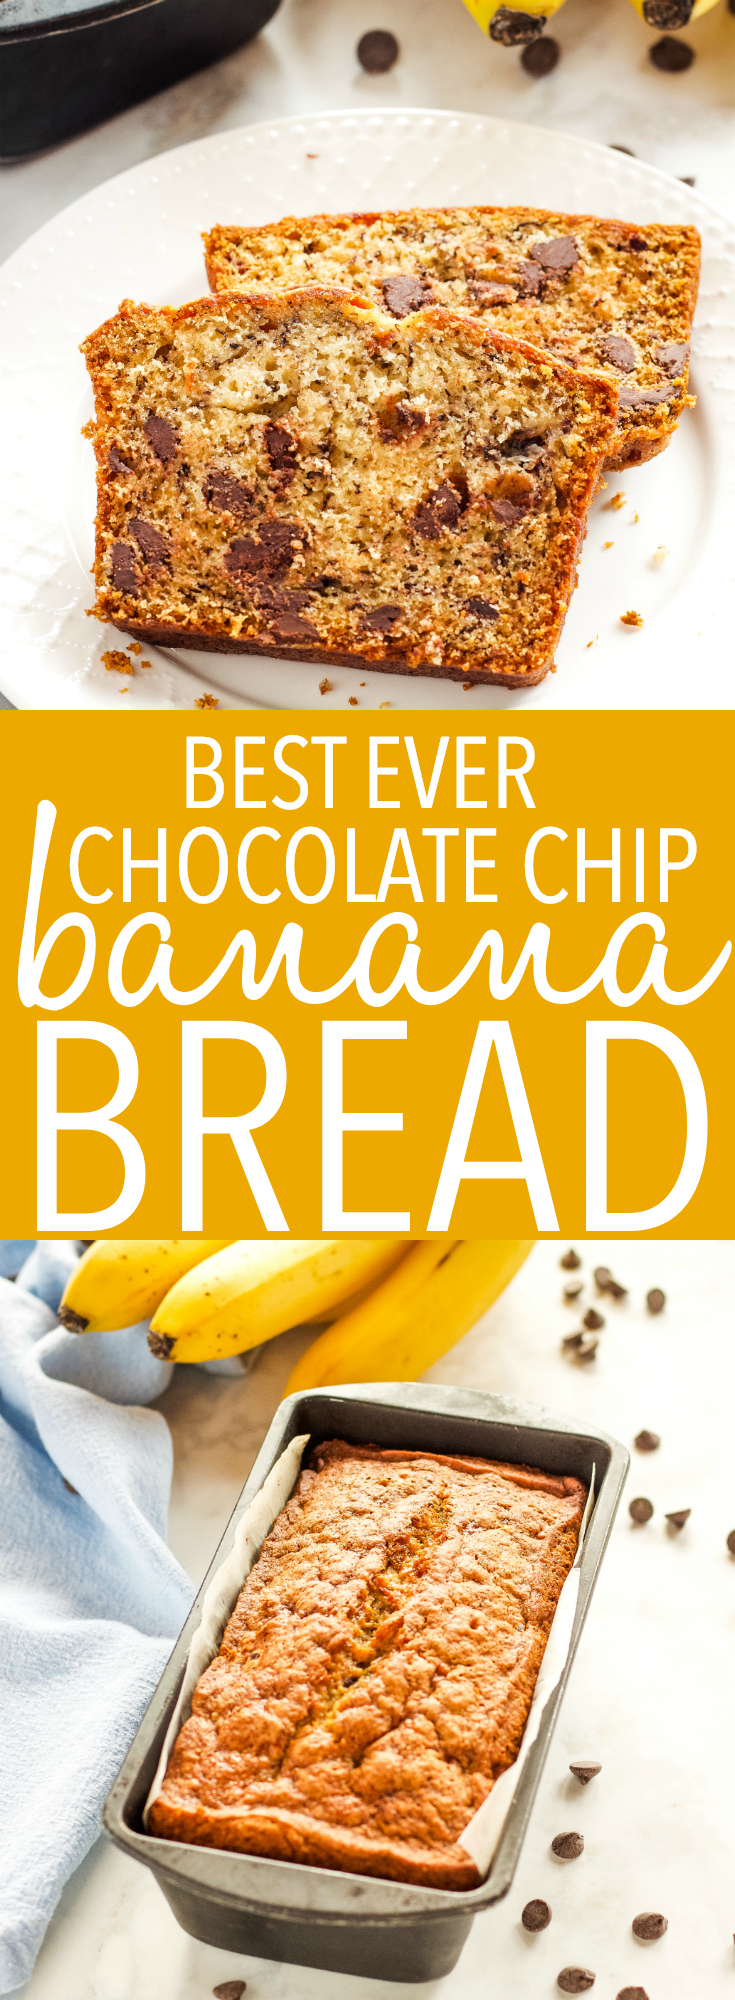 This Best Ever Chocolate Chip Banana Bread is the perfect no-fail breakfast, snack or sweet treat that's easy to make and bakes up perfectly every single time! Recipe from thebusybaker.ca! #banana #bread #muffins #easyrecipe #recipe #quickbread #baking #homesteading #homemade #fruit #healthy #dessert #treat #sweet via @busybakerblog